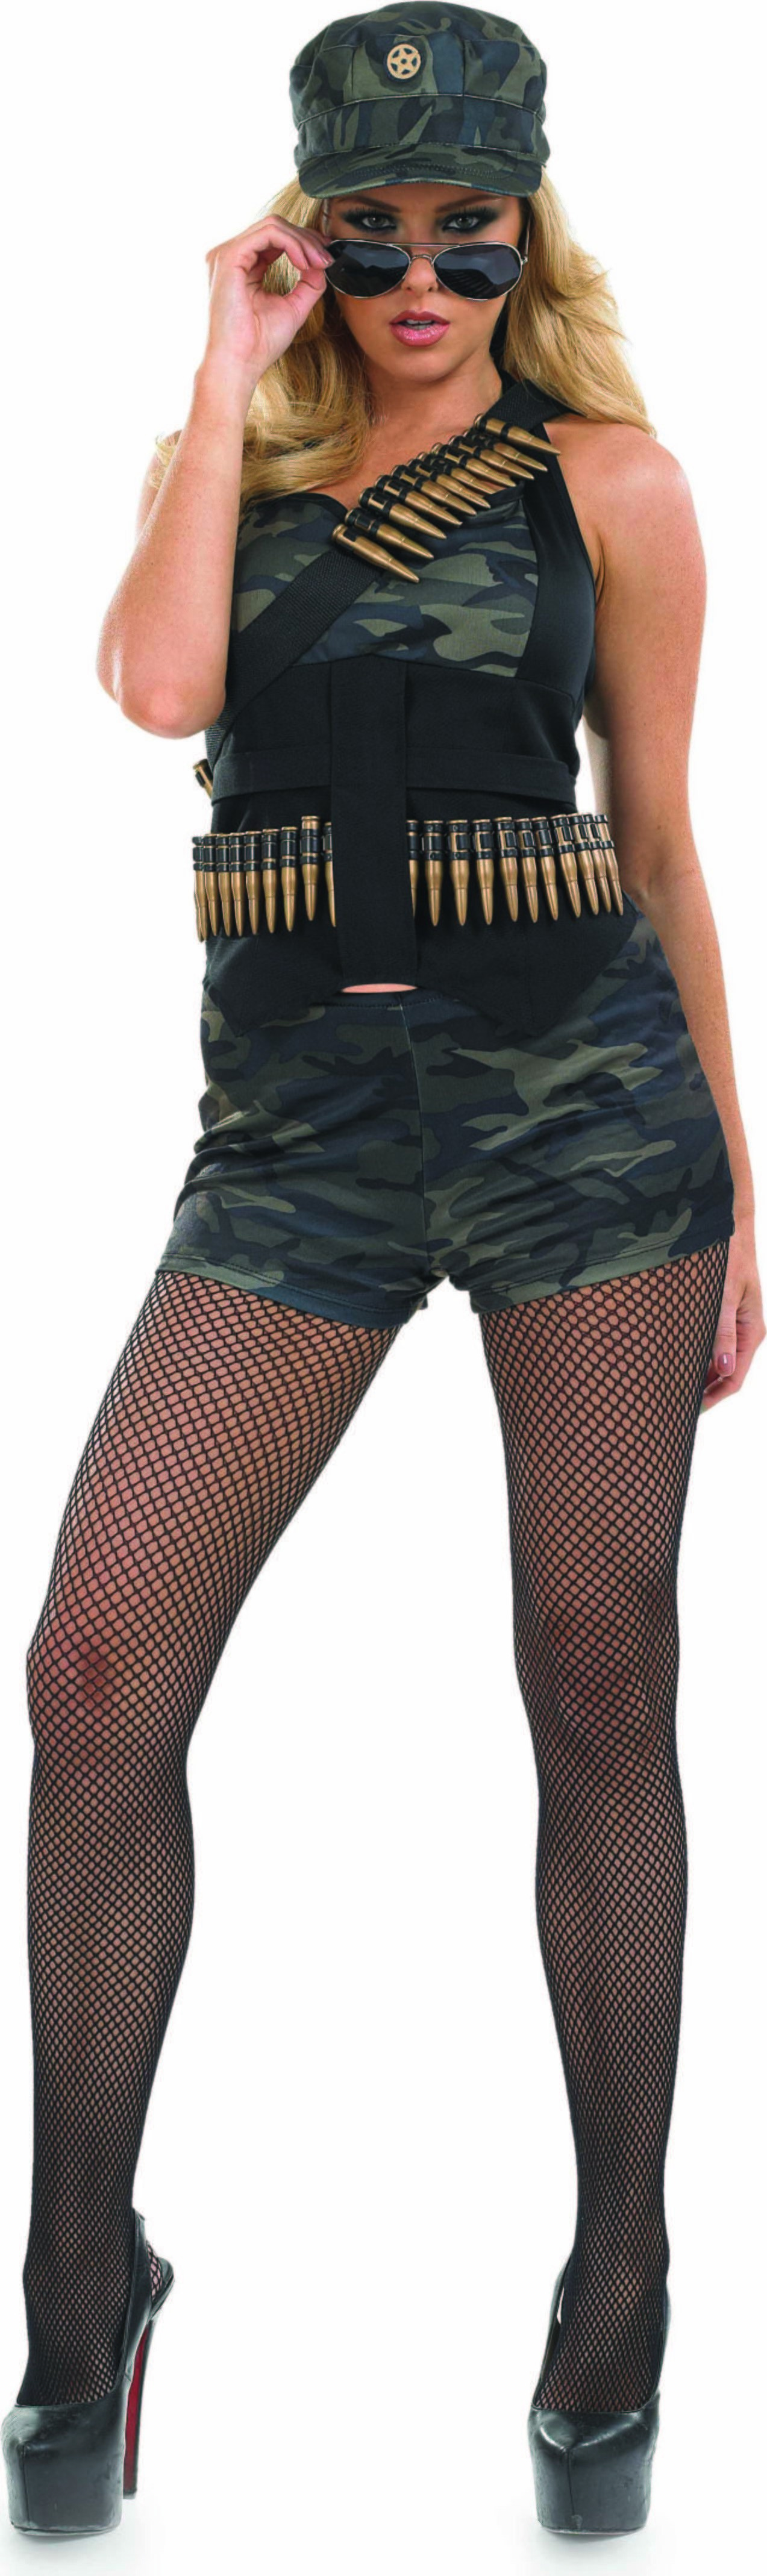 Ladies Hot Pants Hero Army Outfit - (Camo )